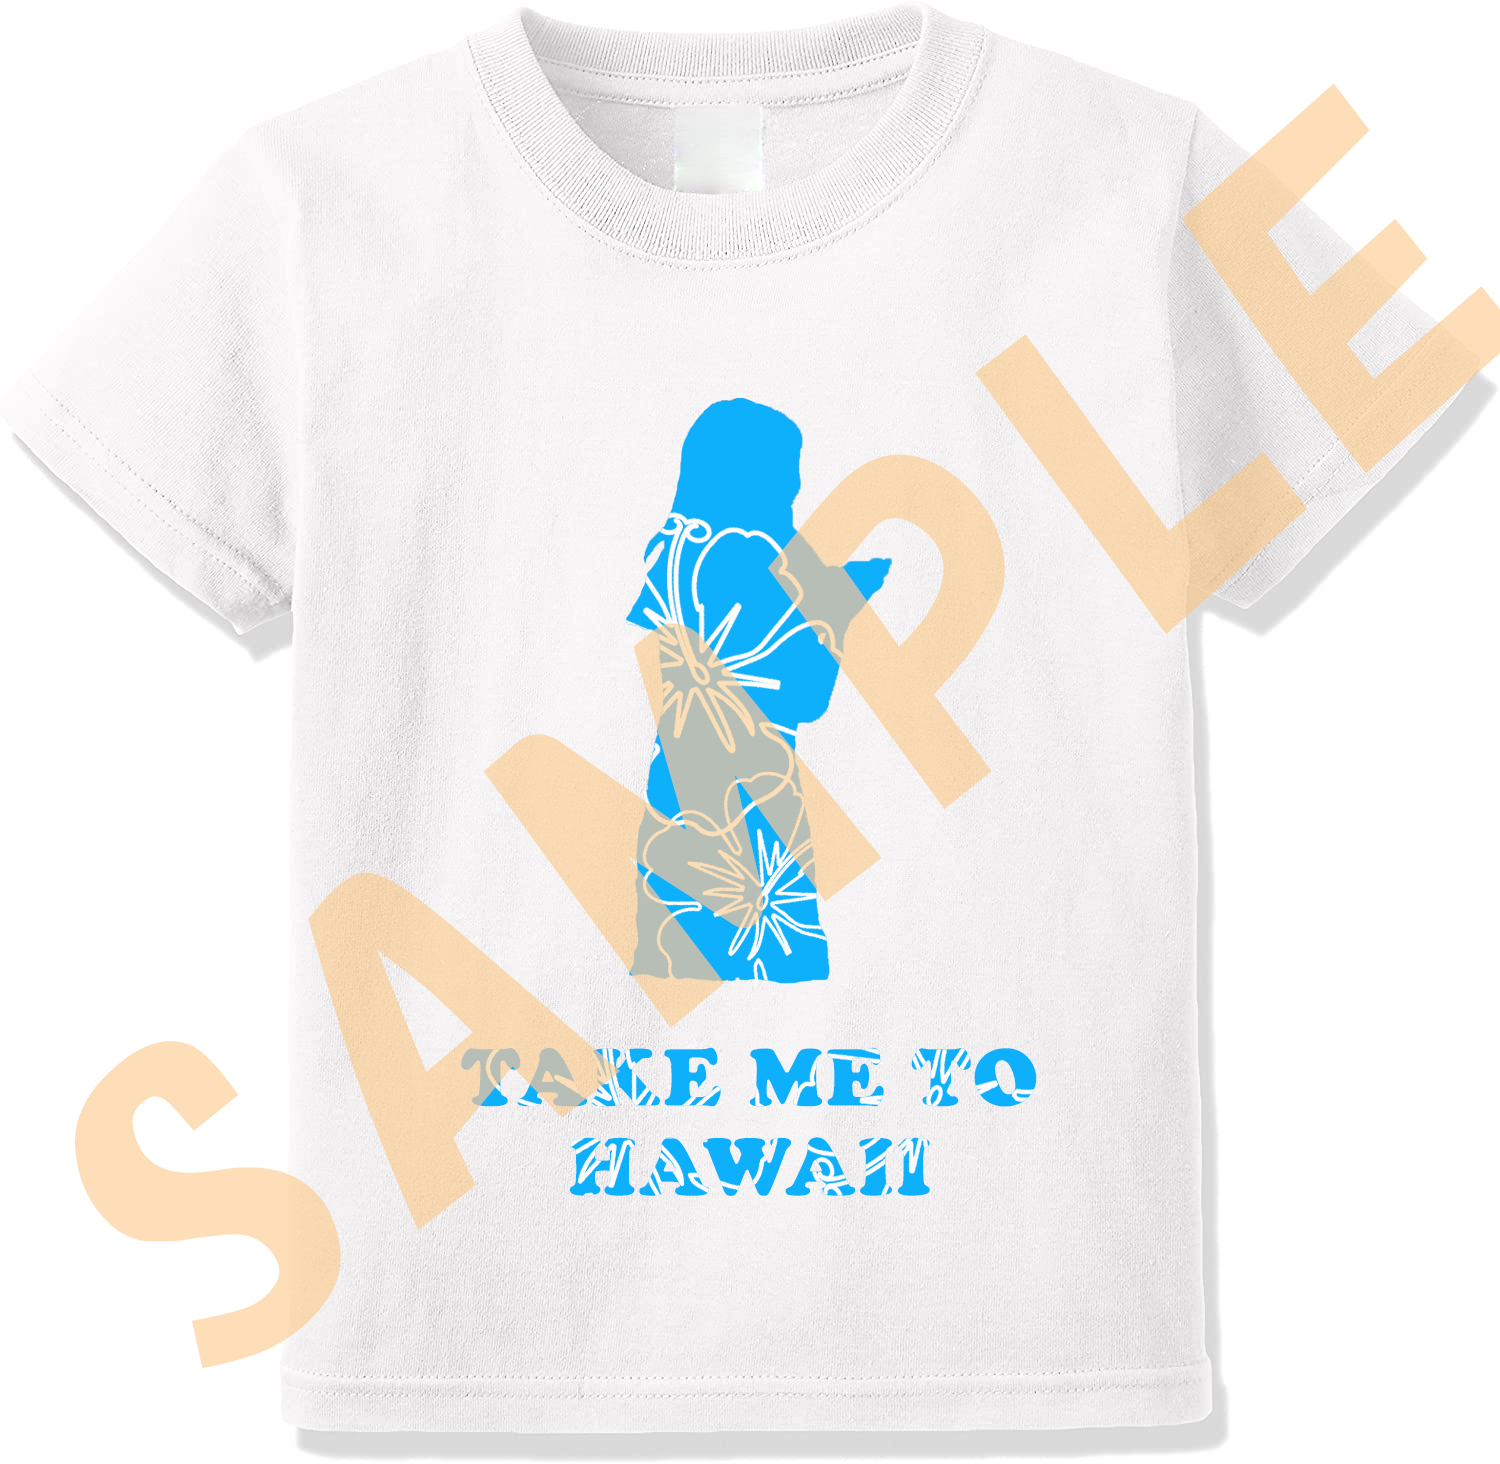 Kohara Konomi T-shirt TAKE ME TO HAWAII XL SIZE Release in September 25th No.1